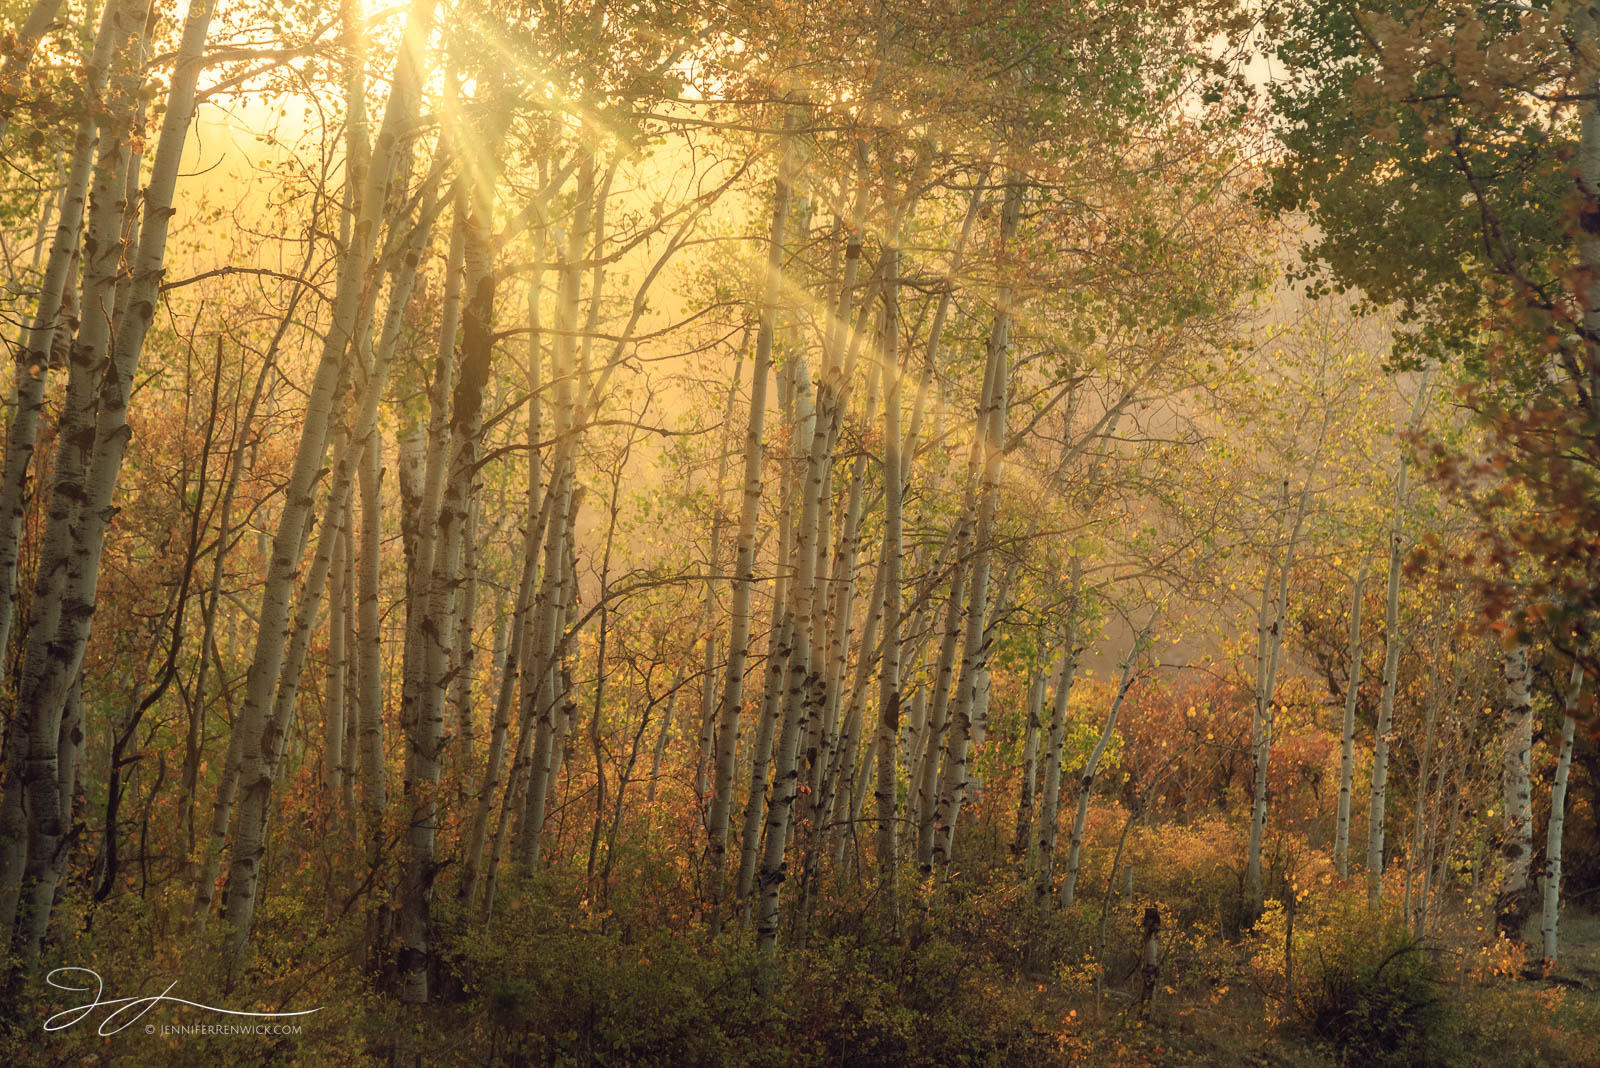 Sun rays bathe an autumn aspen forest with warm light.